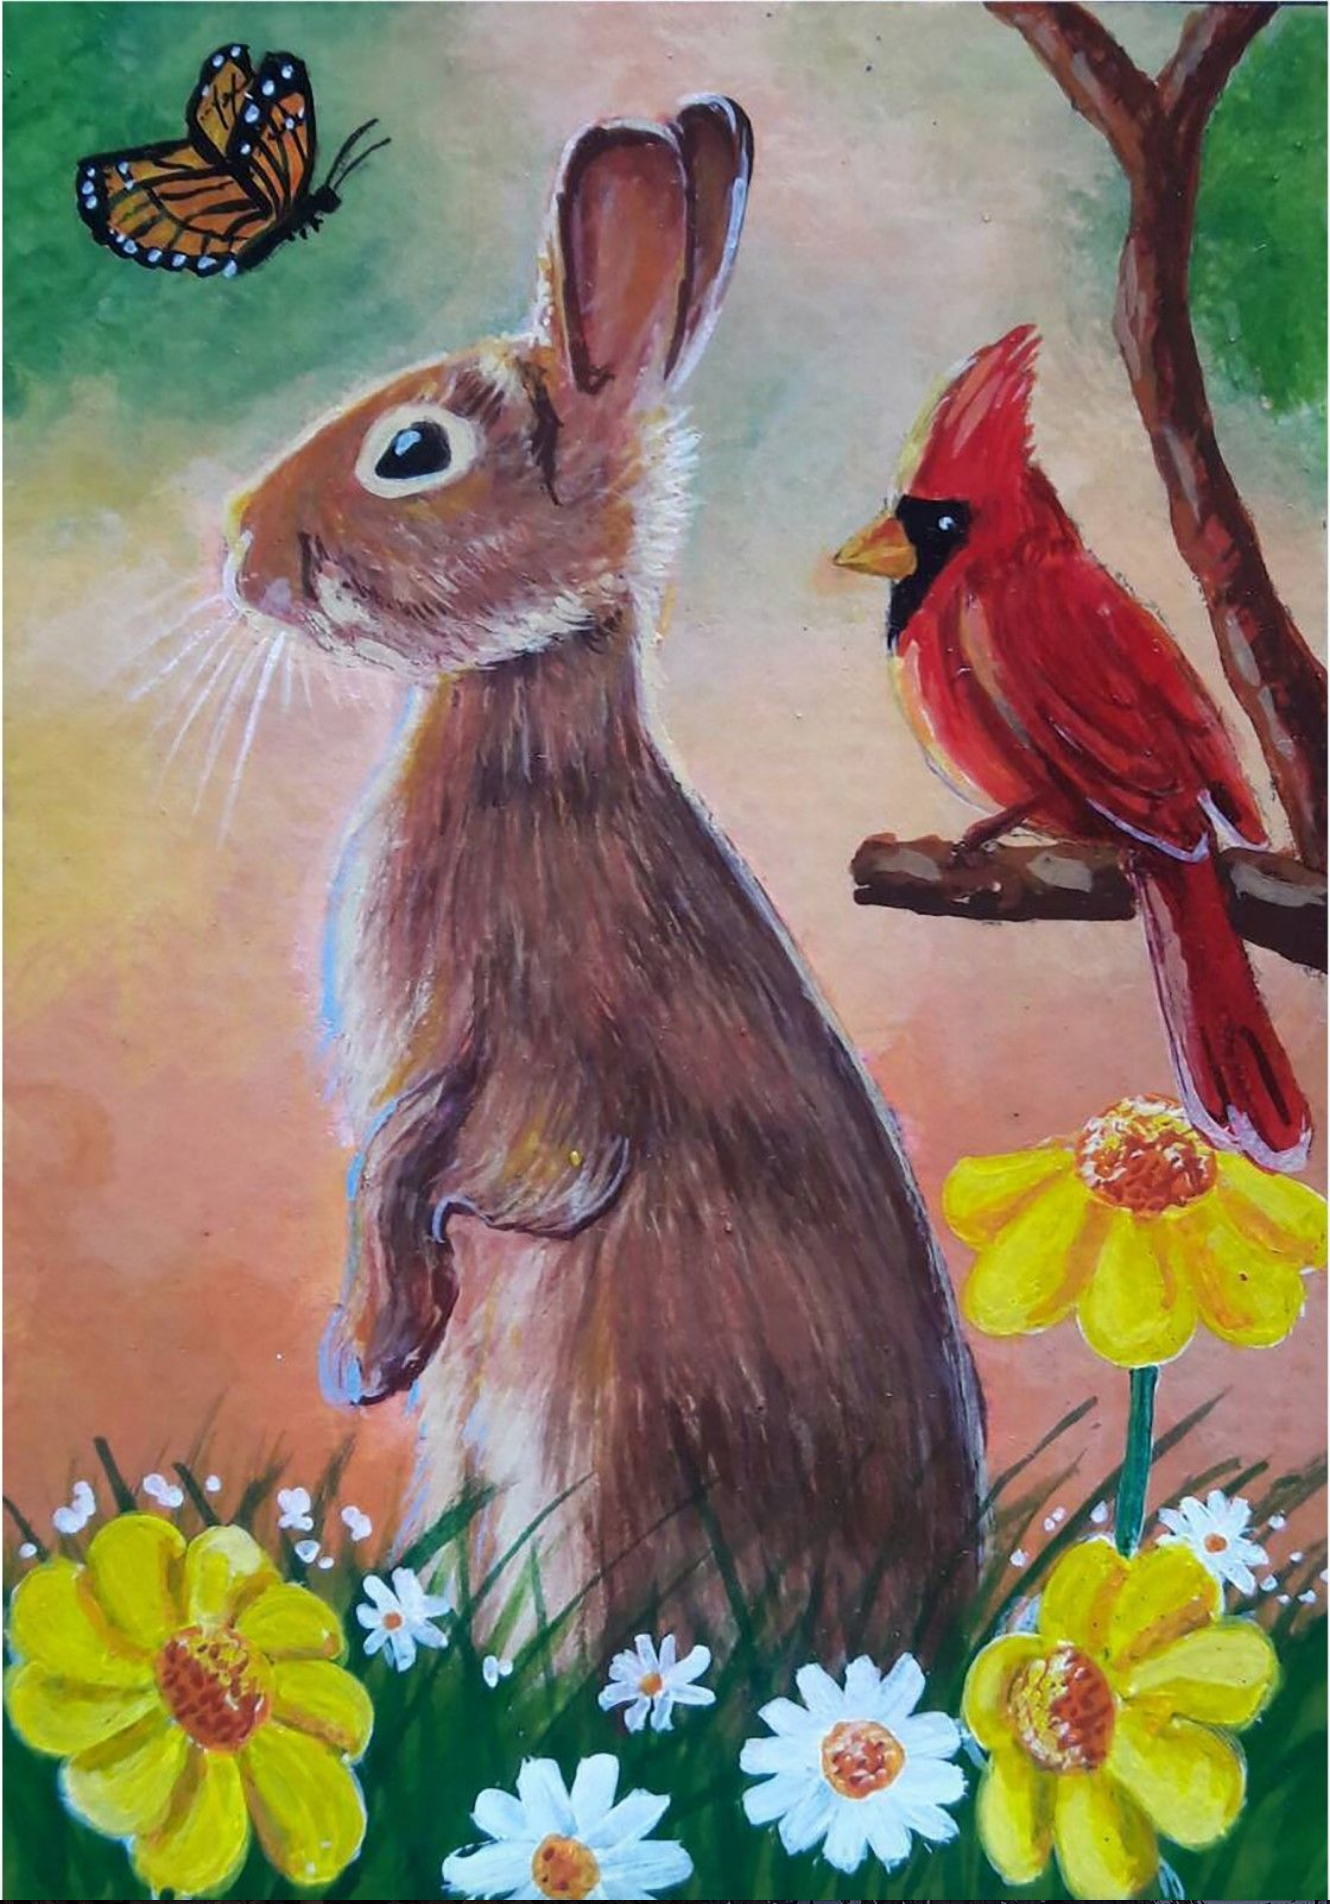 Spring Bunny  animal art from original painting by Patricia Chu ACEO limited edition art print 2.5 x 3.5 inches